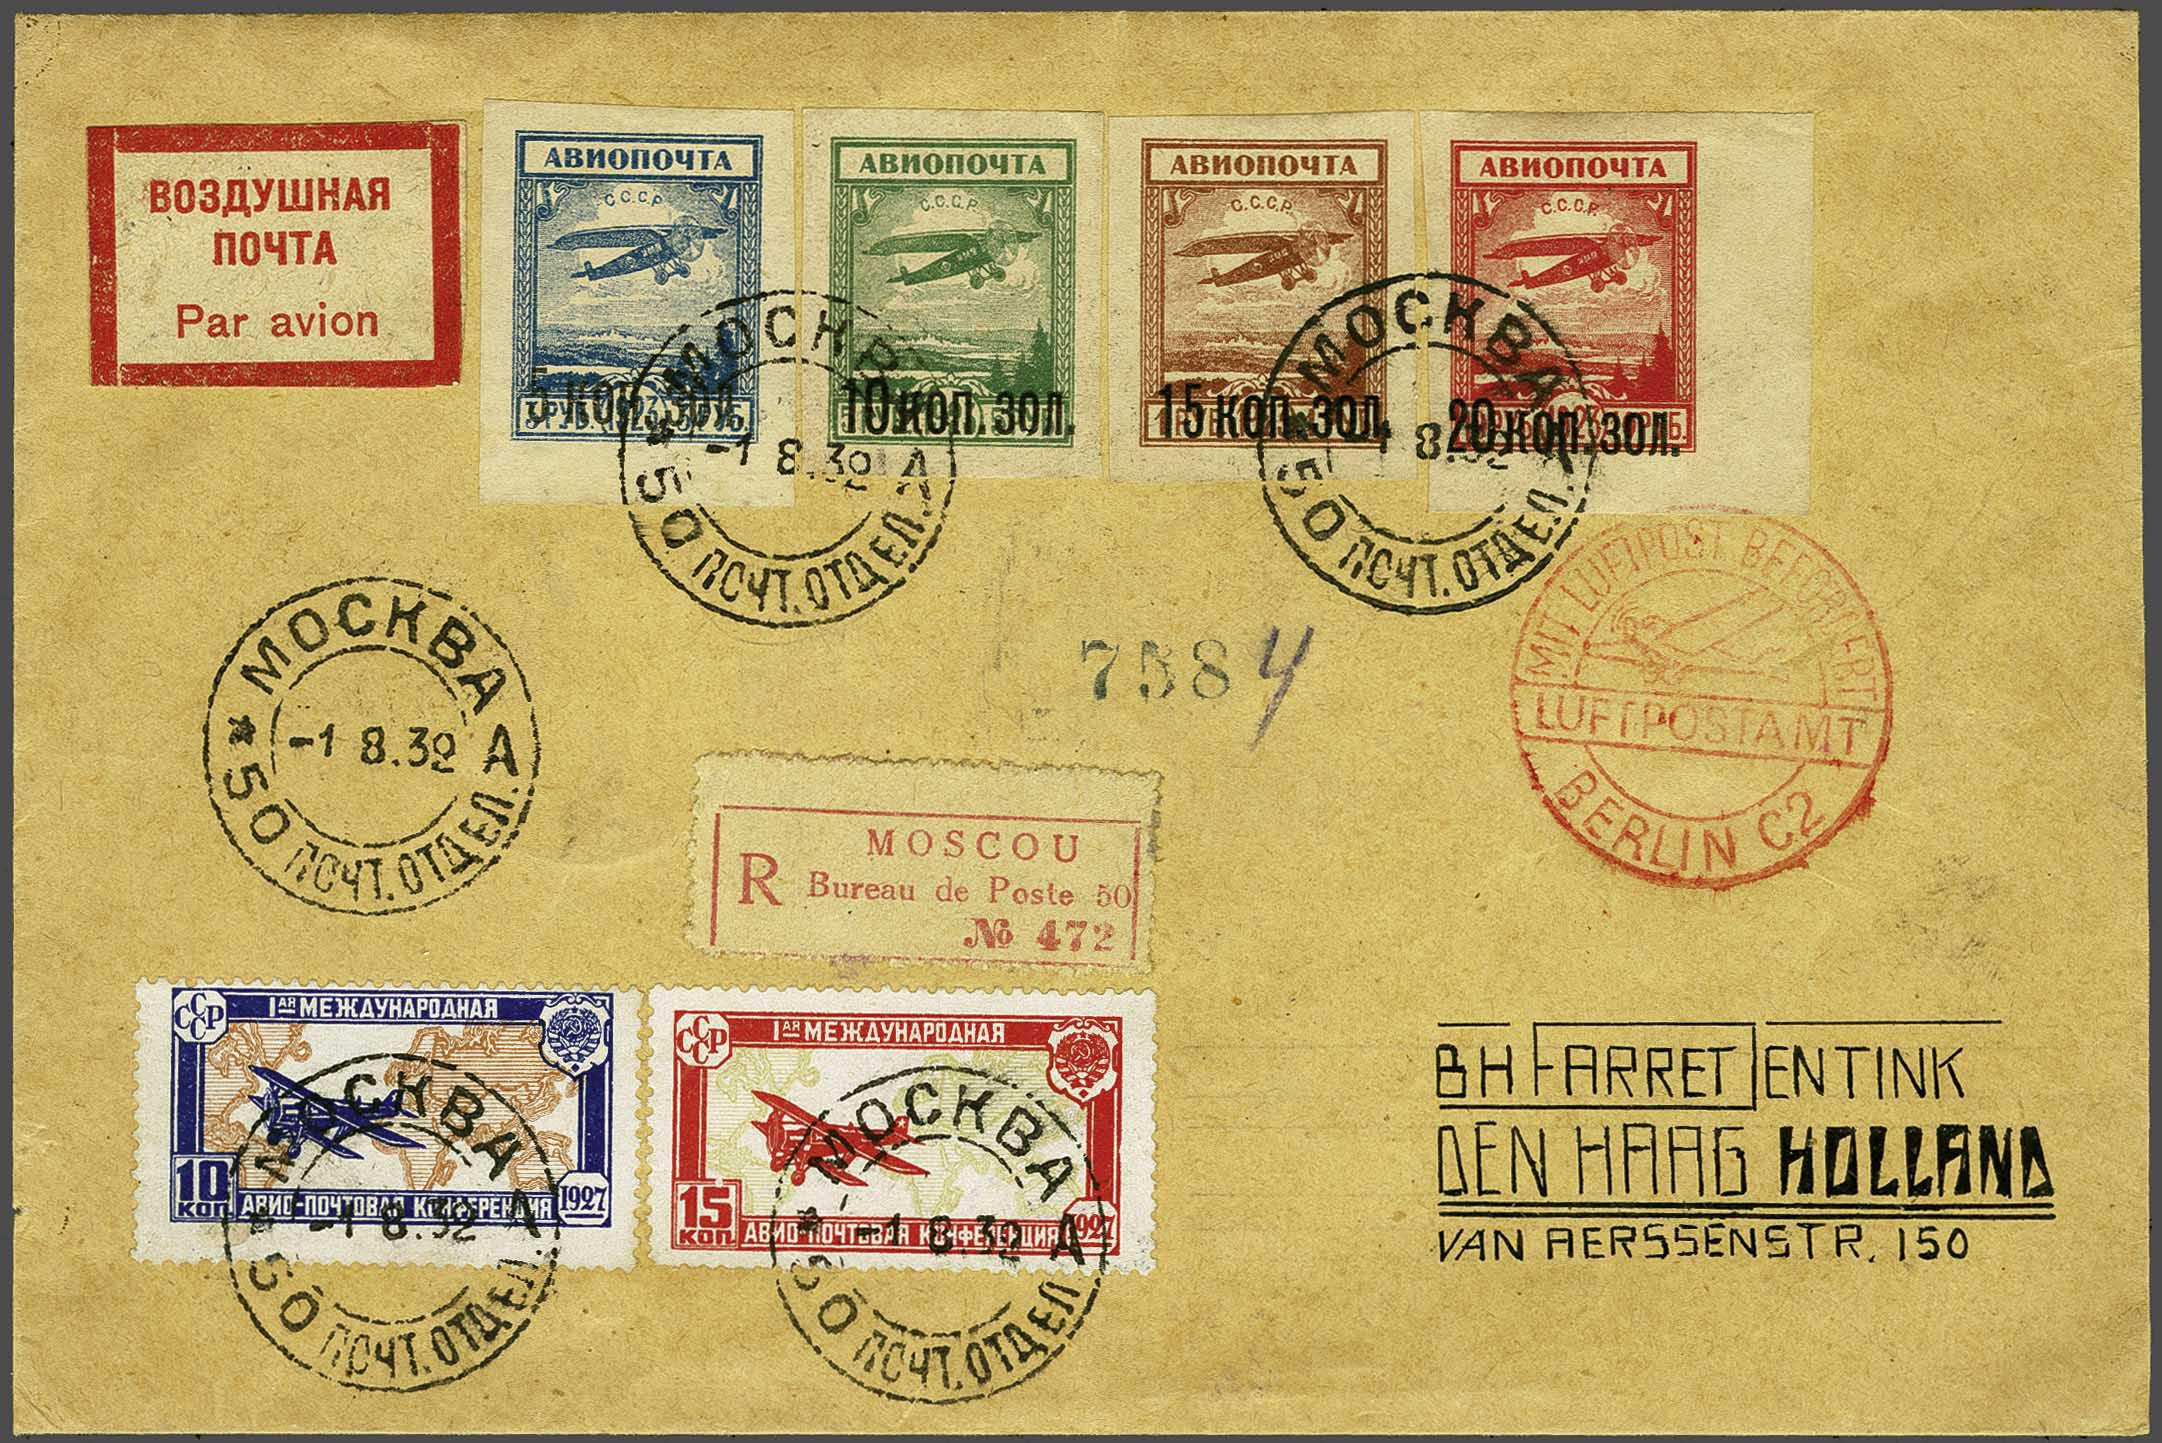 Lot 509 - European Countries Russia -  Corinphila Veilingen Auction 245-246 Day 1 - Nepal - The Dick van der Wateren Collection, Foreign countries - Single lots, Picture postcards